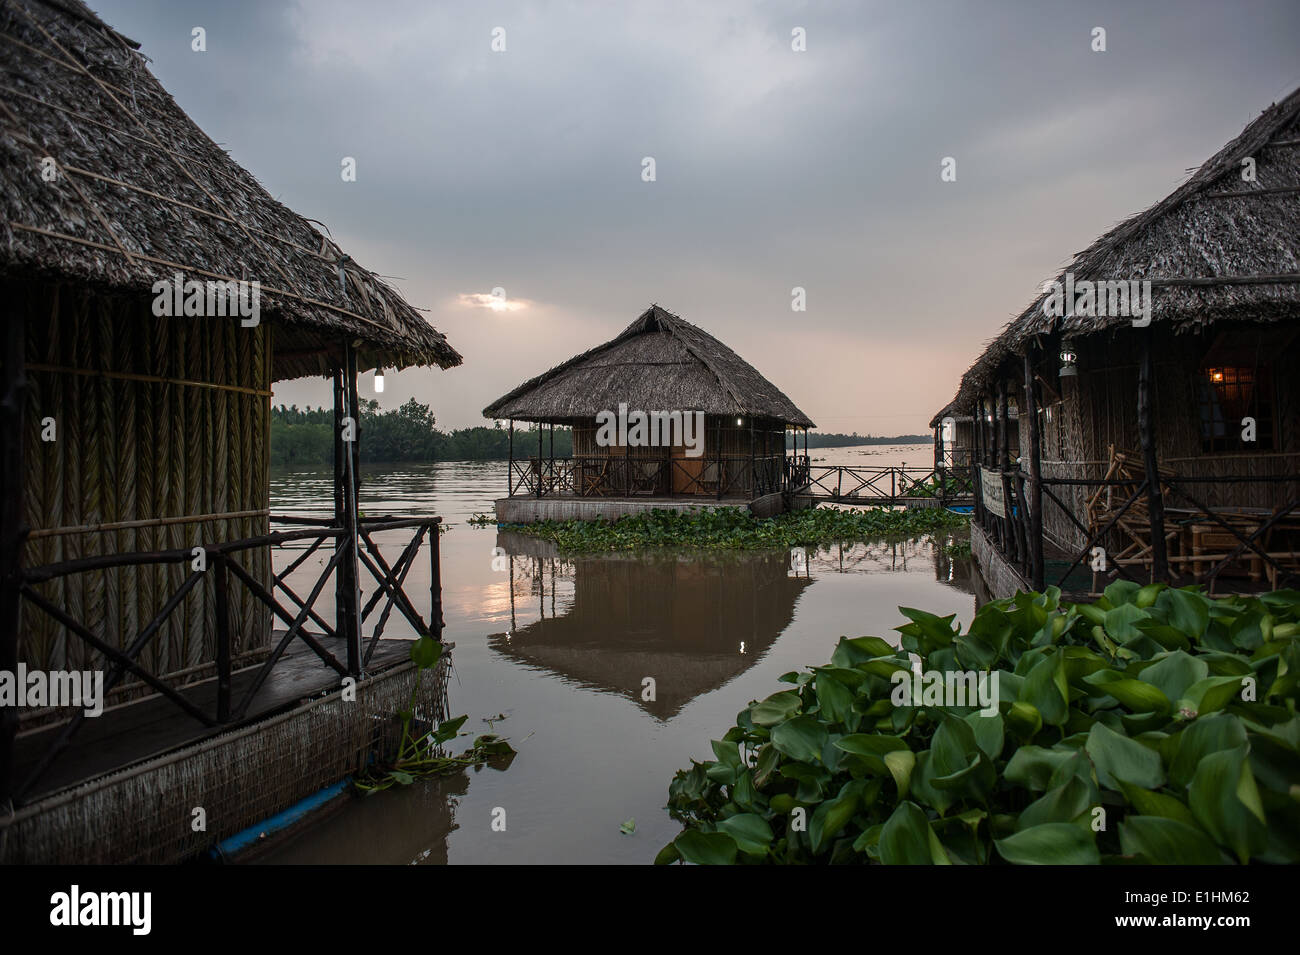 Houses at Mekong Delta in Vietnam - Stock Image